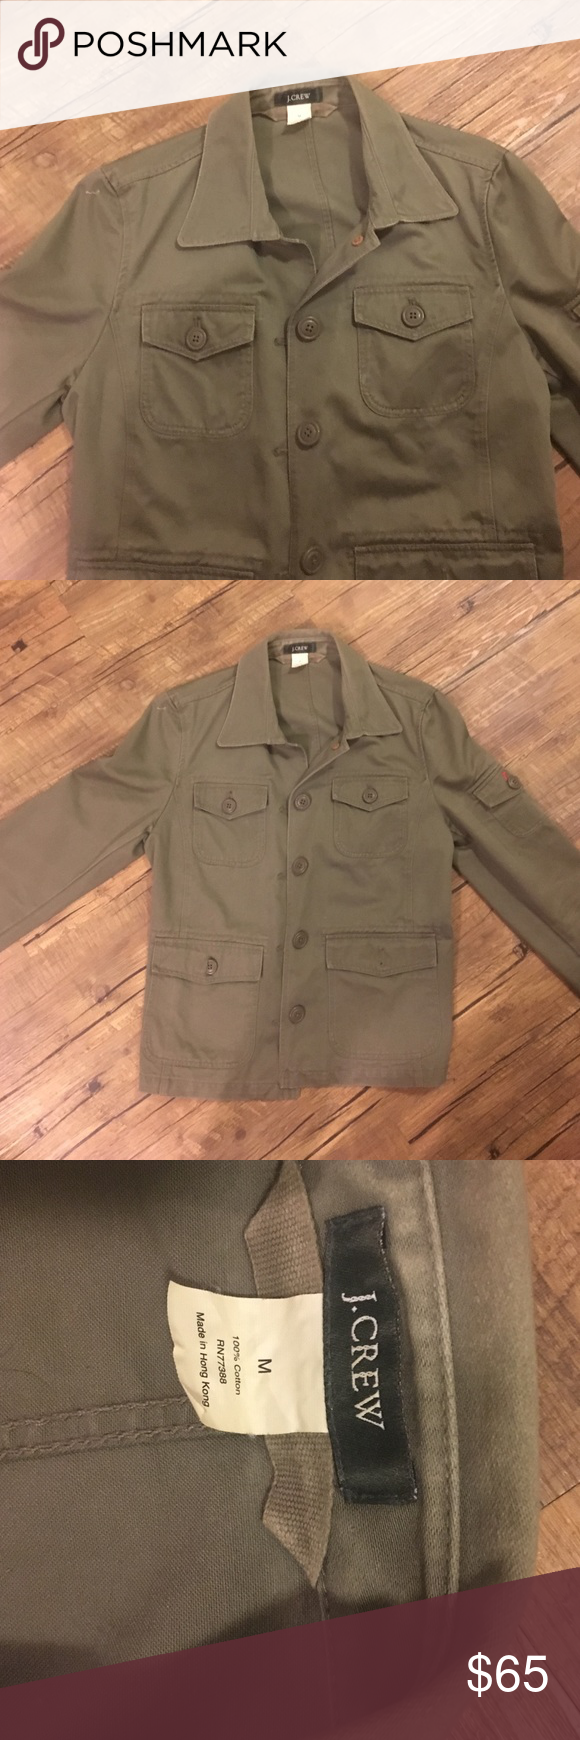 J. Crew Military Jacket Super cute and in great condition army green jacket. Comes from non-smoking household. No trades please, but offers and bundles are welcomed :) J. Crew Jackets & Coats